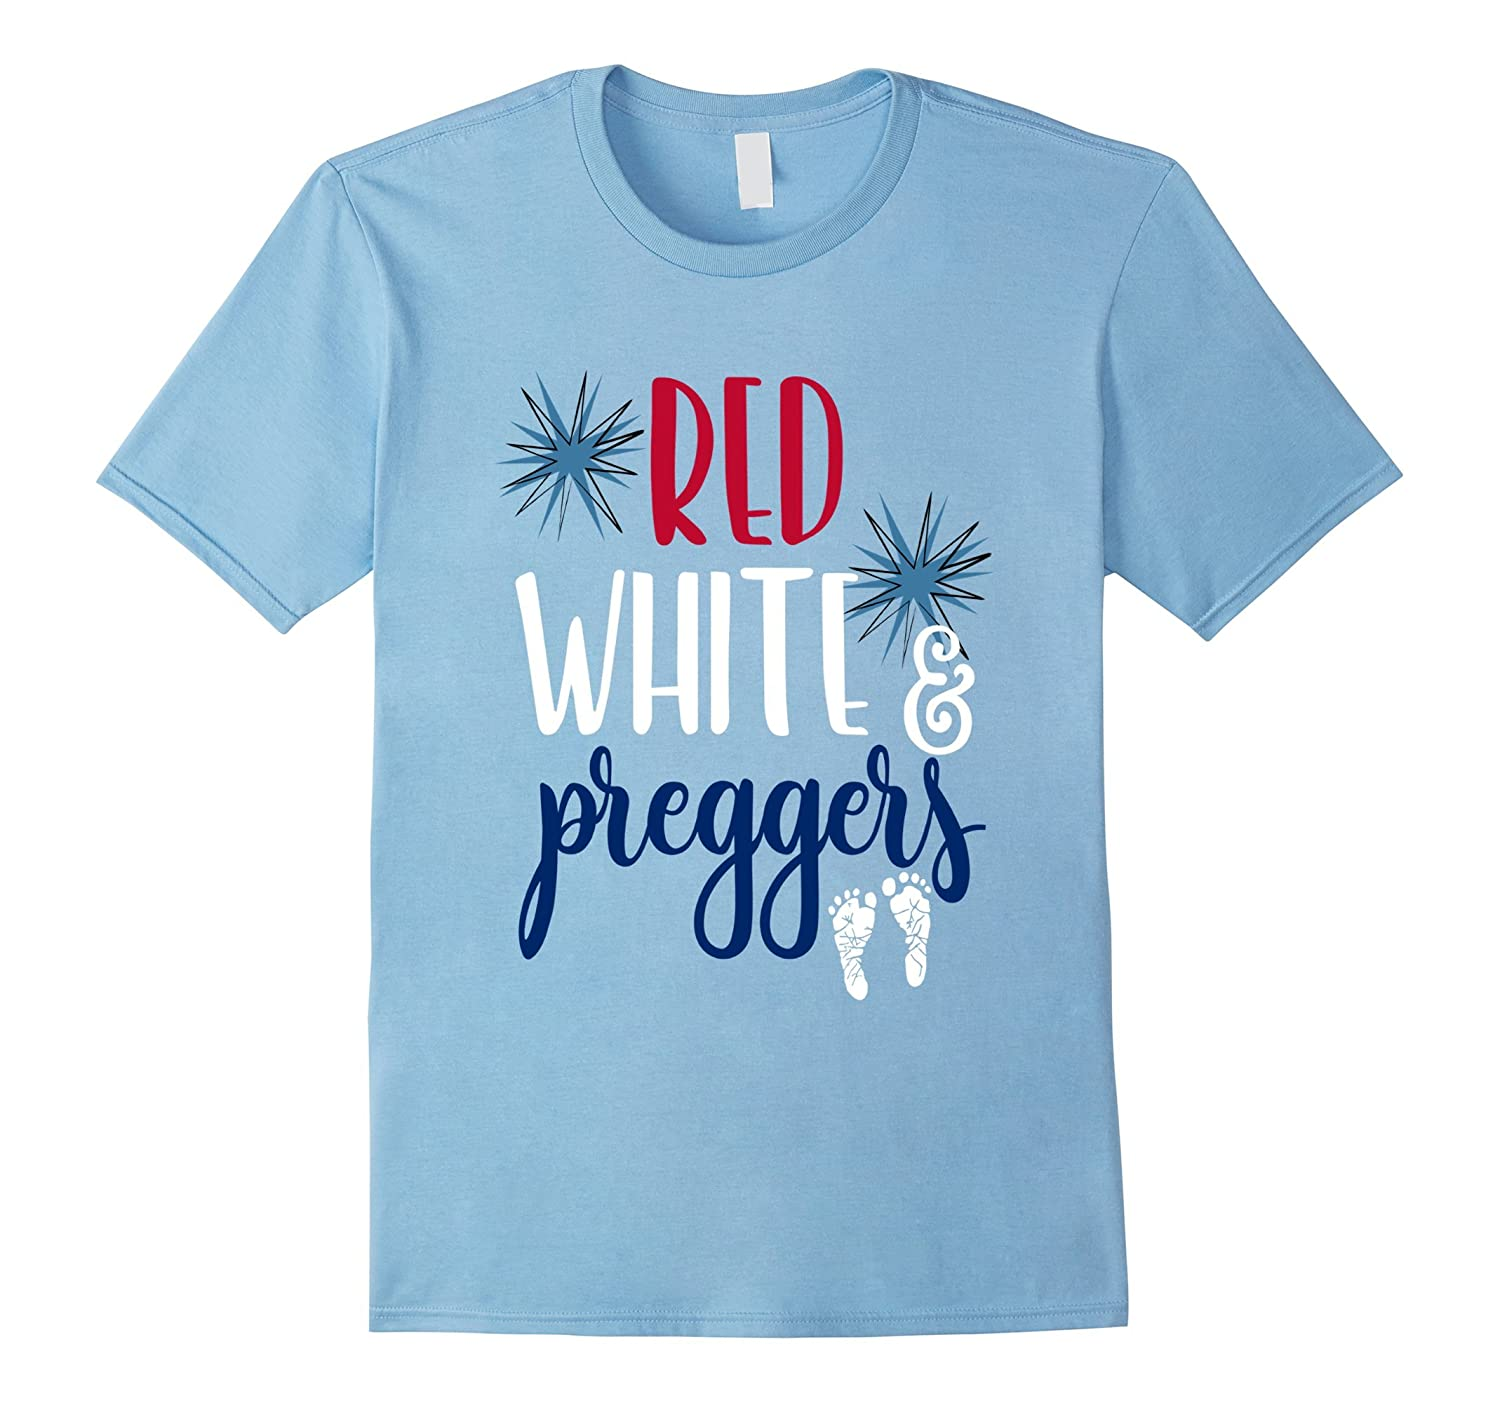 4th of July Maternity Shirt Pregnant Red White  Preggers-PL